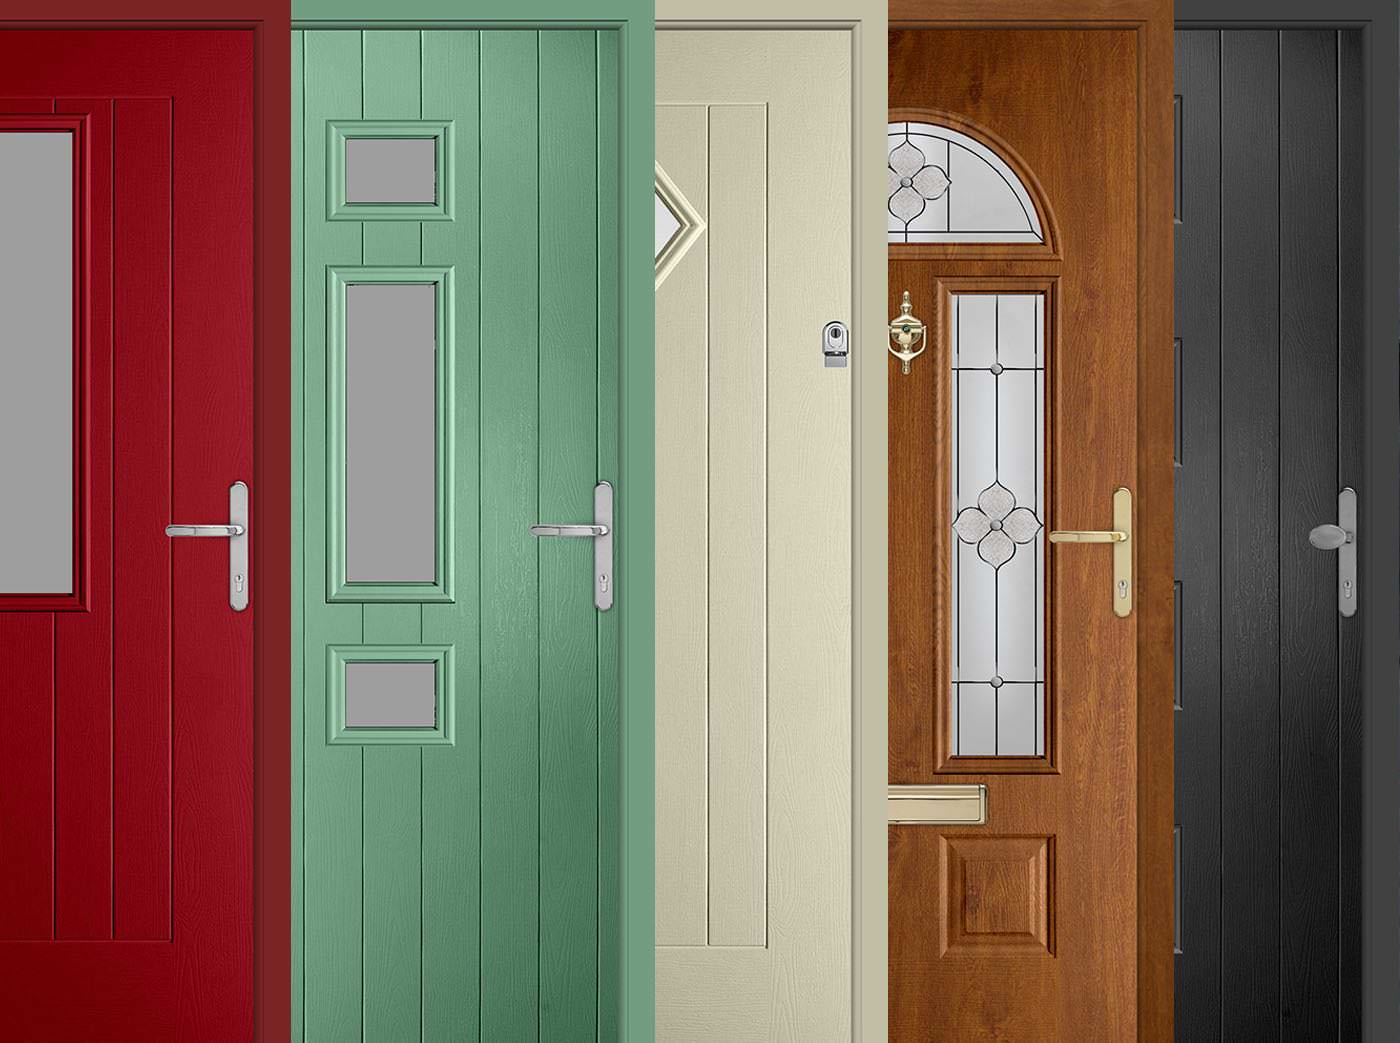 What Are Composite Doors Made Of? Timeline Image